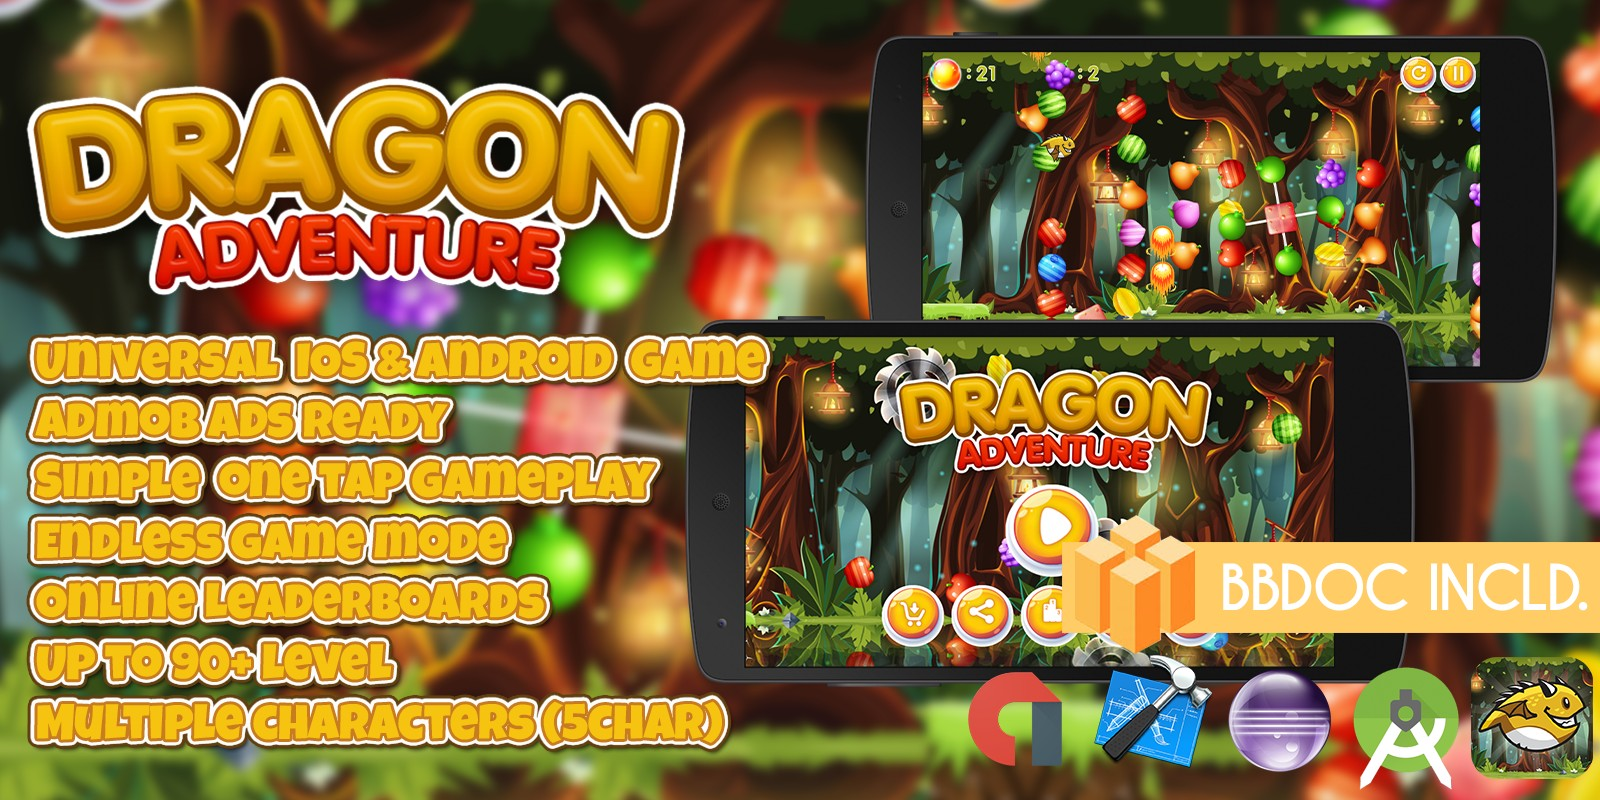 Dragon Adventure - Android iOS Buildbox Project